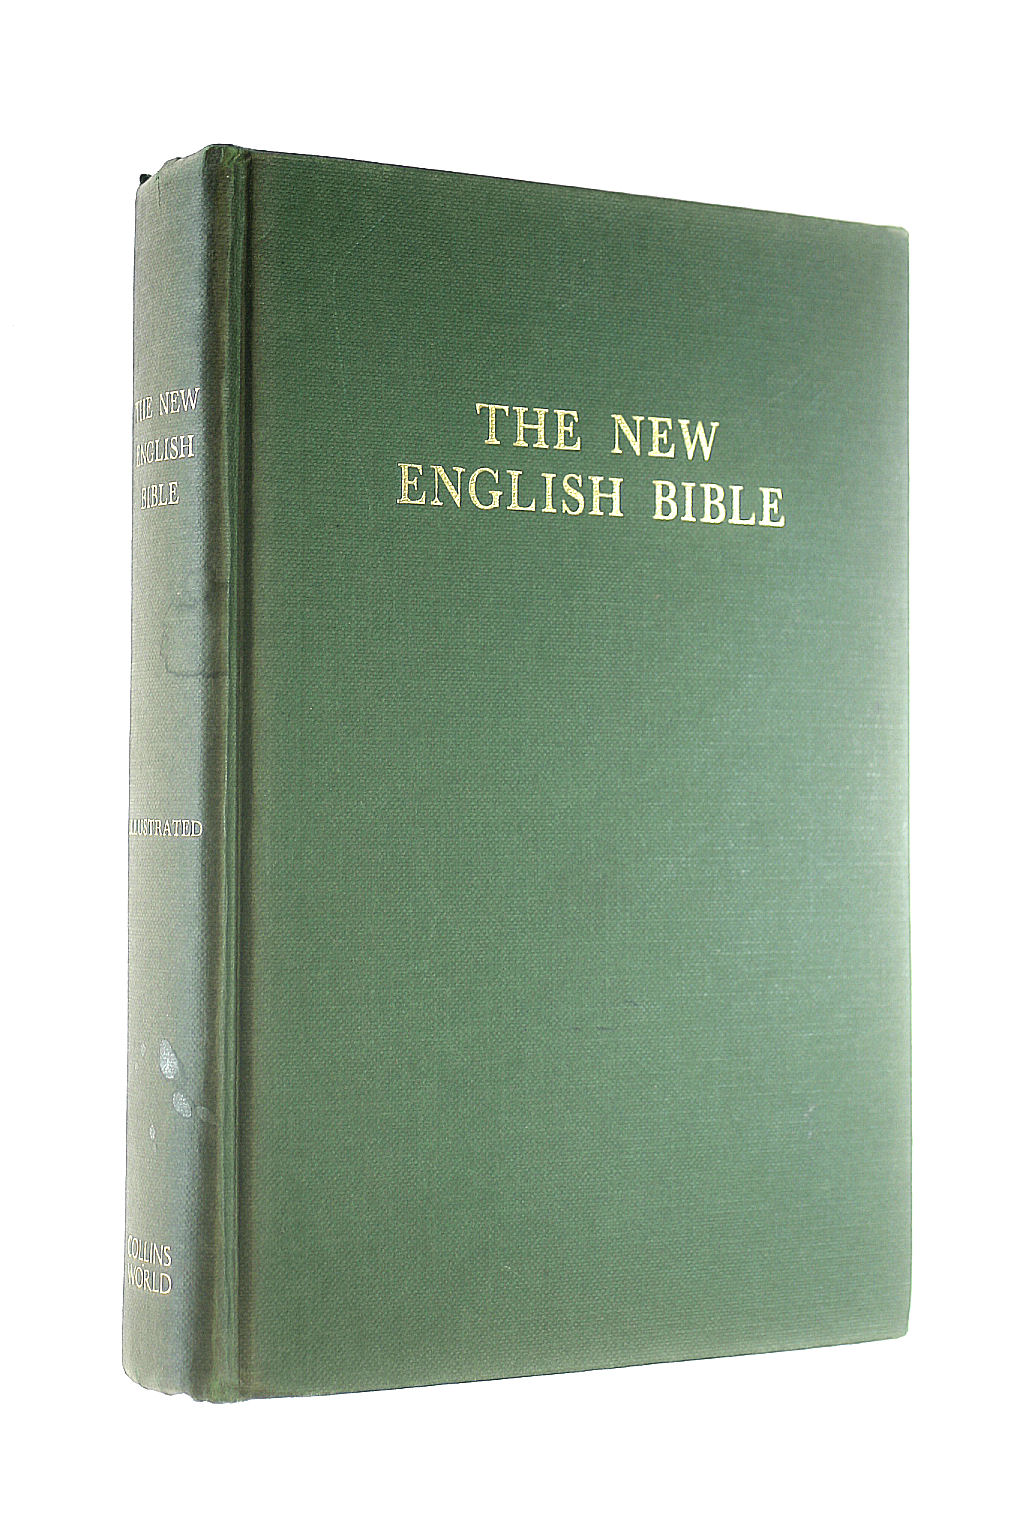 Image for THE NEW ENGLISH BIBLE